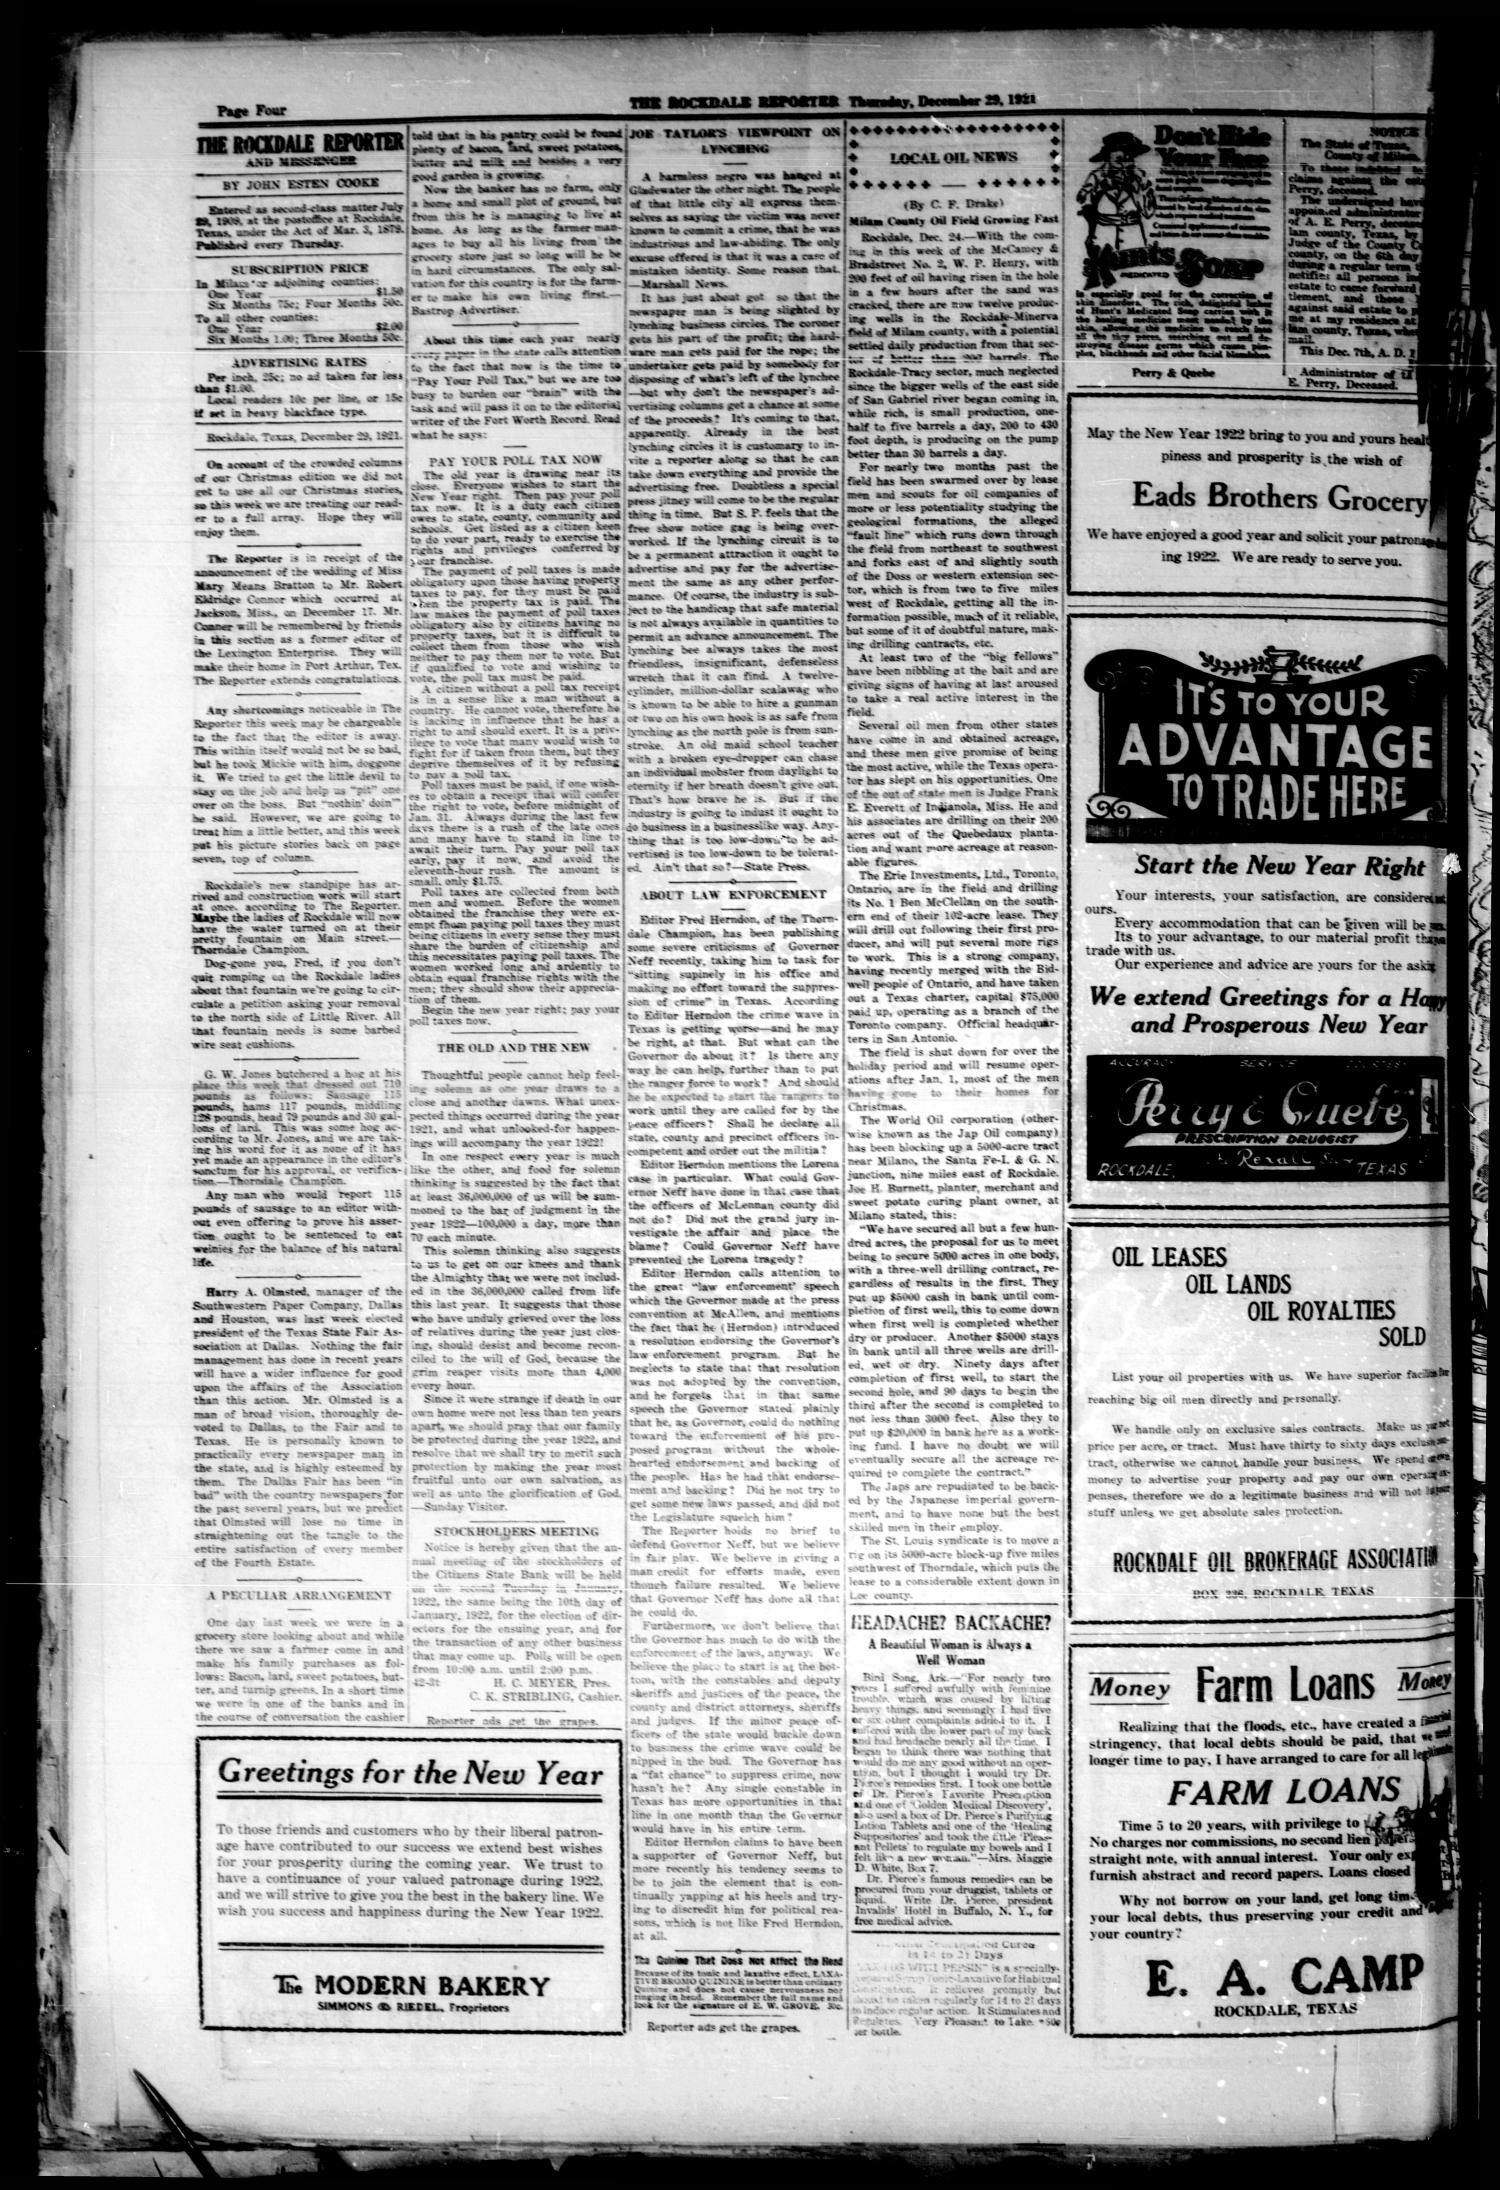 The Rockdale Reporter and Messenger (Rockdale, Tex.), Vol. [49], No. 44, Ed. 1 Thursday, December 29, 1921                                                                                                      [Sequence #]: 4 of 8